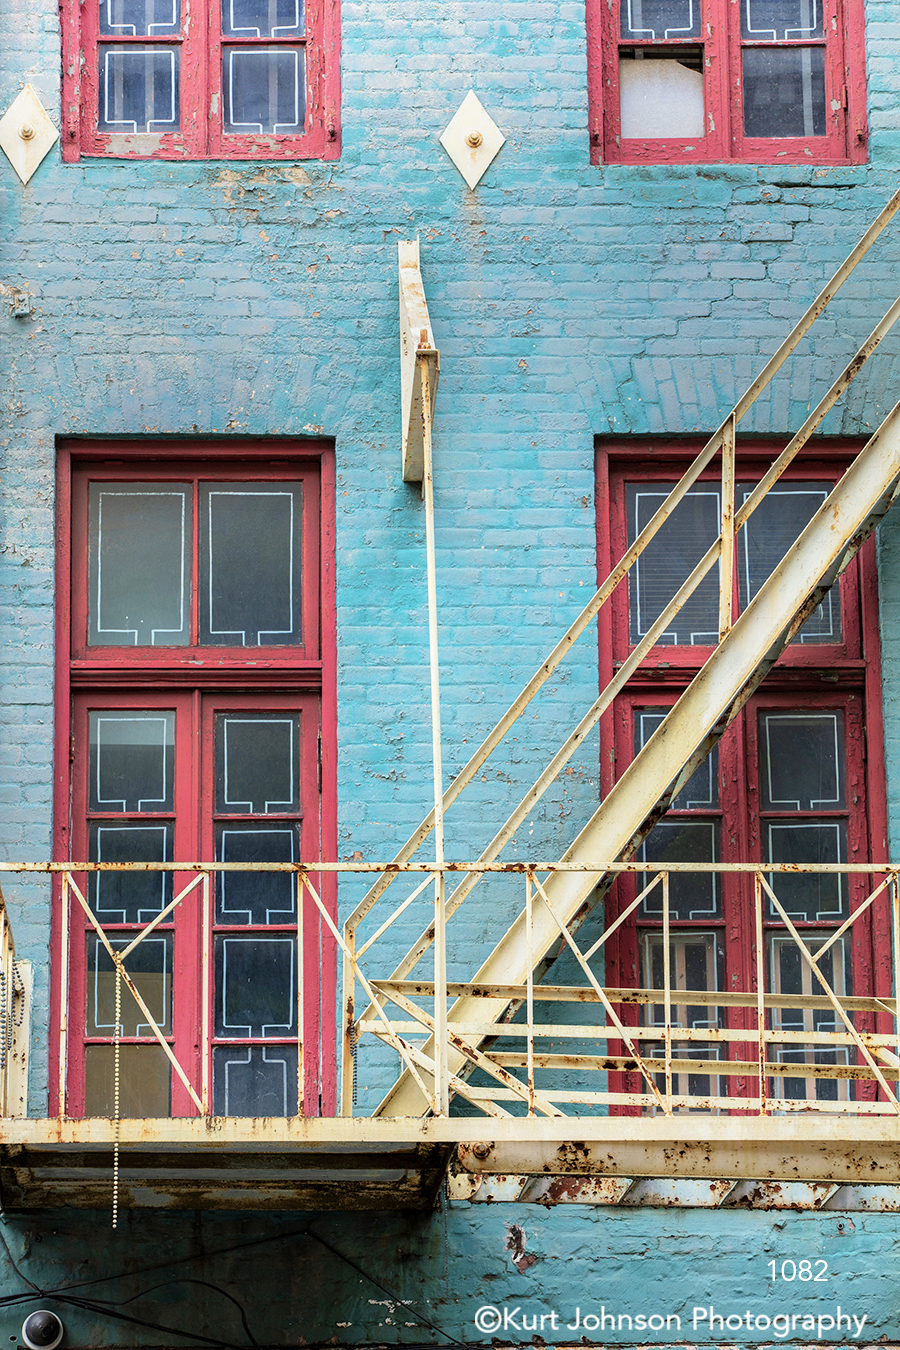 turquoise brick building windows colorful city staircase fire escape downtown architecture building south southeast